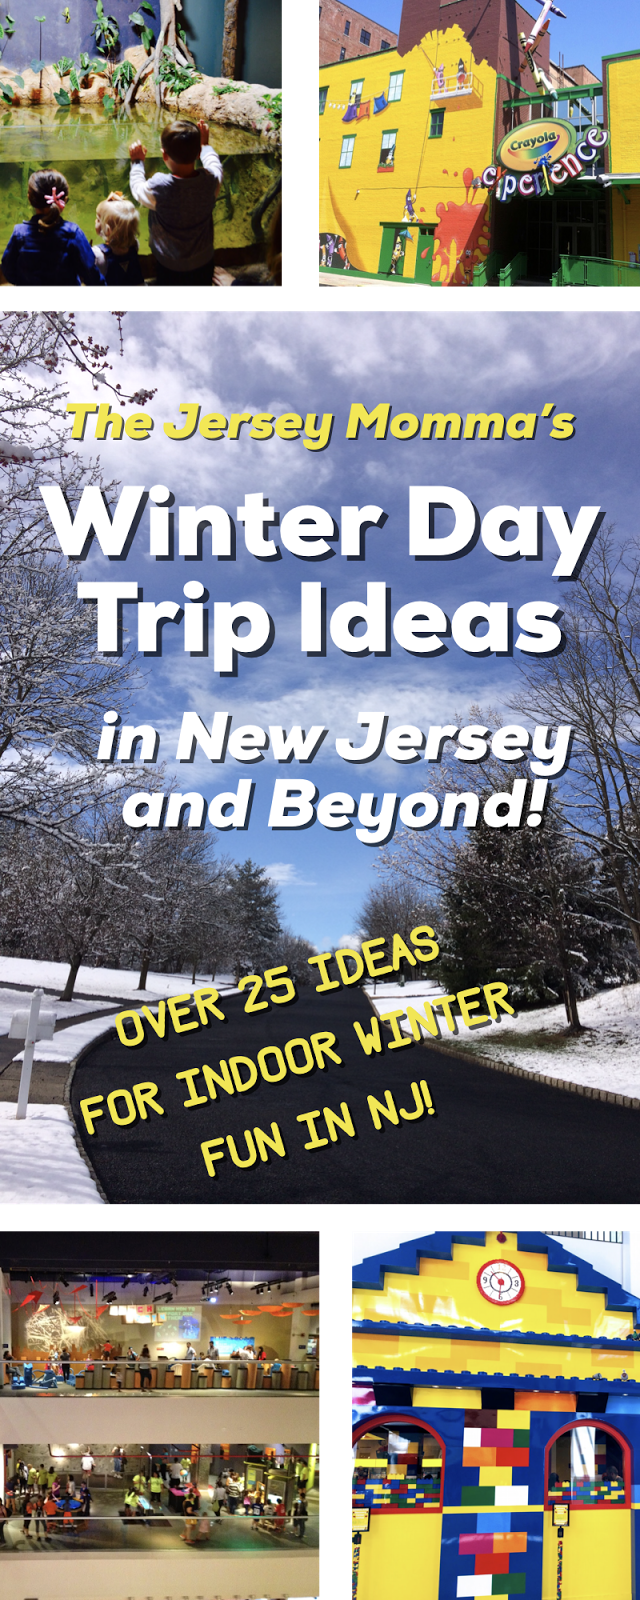 Things To Do In New Jersey Is Your Source For Fun Nj This Winter Read On A Plete Outdoor Ice Skating Rinks